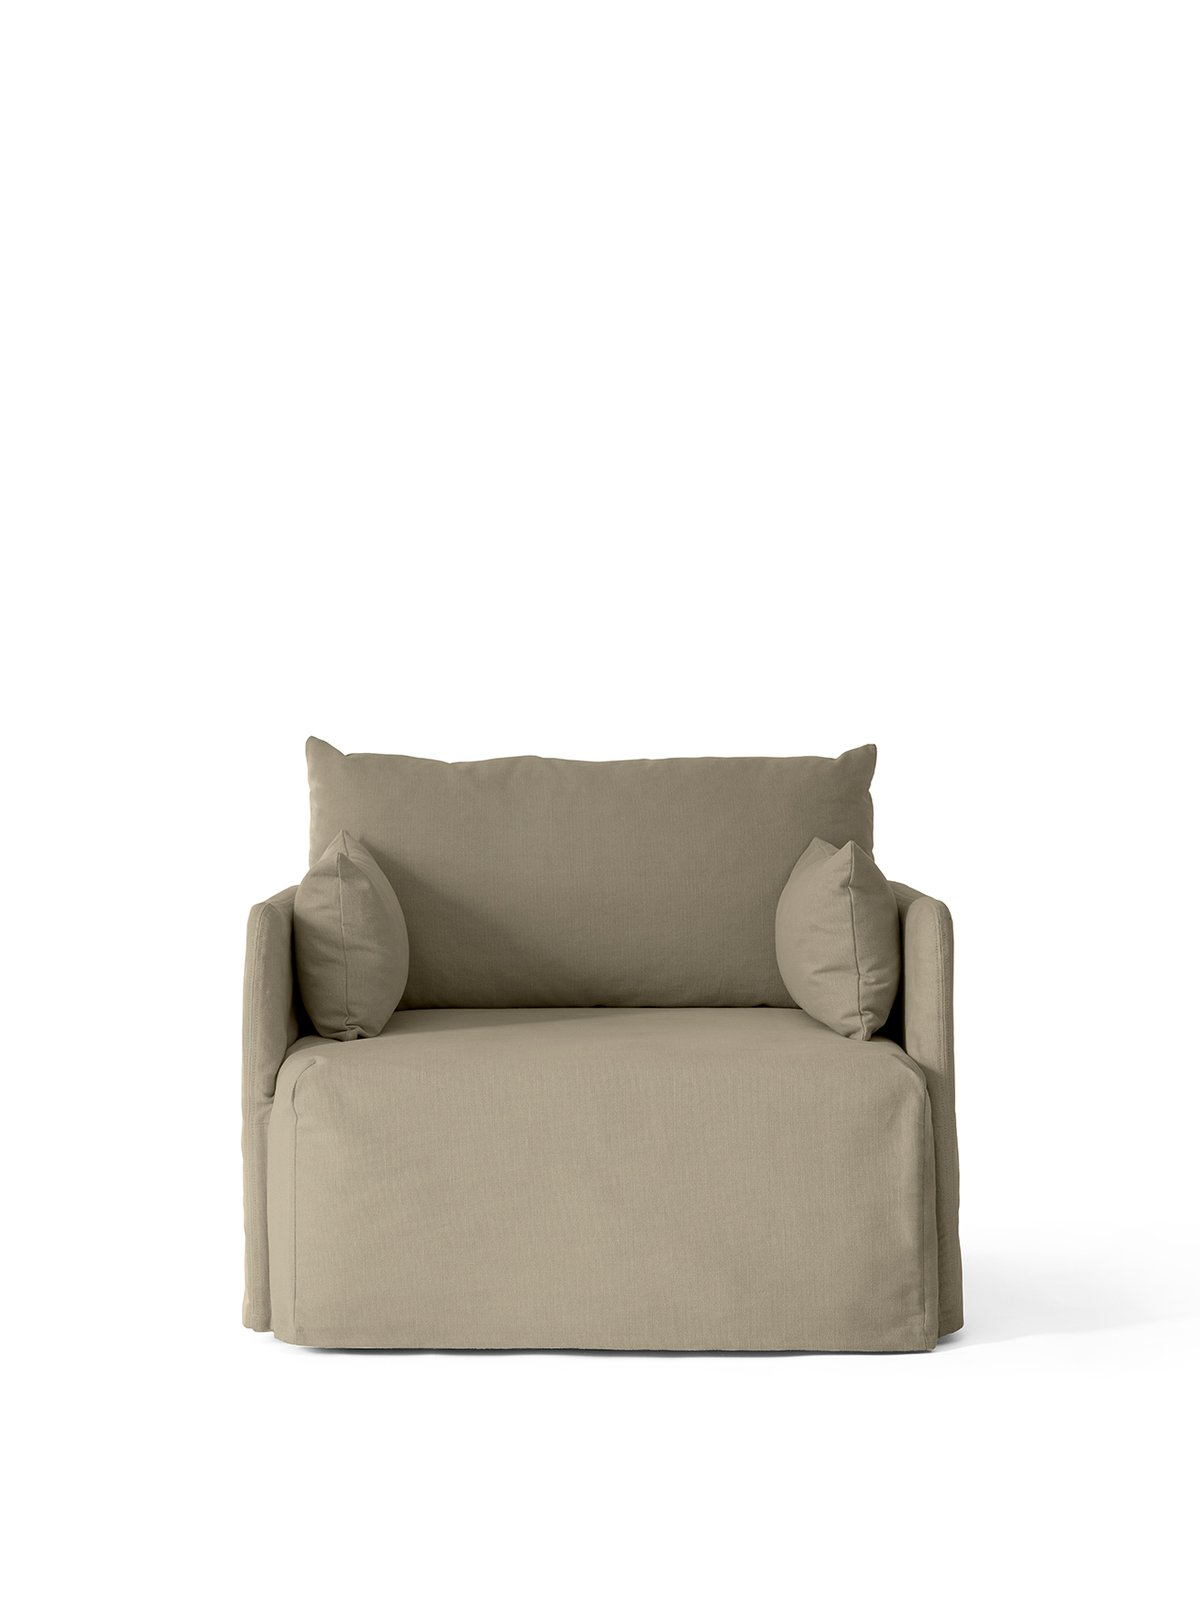 Offset Armchair with Loose Cover